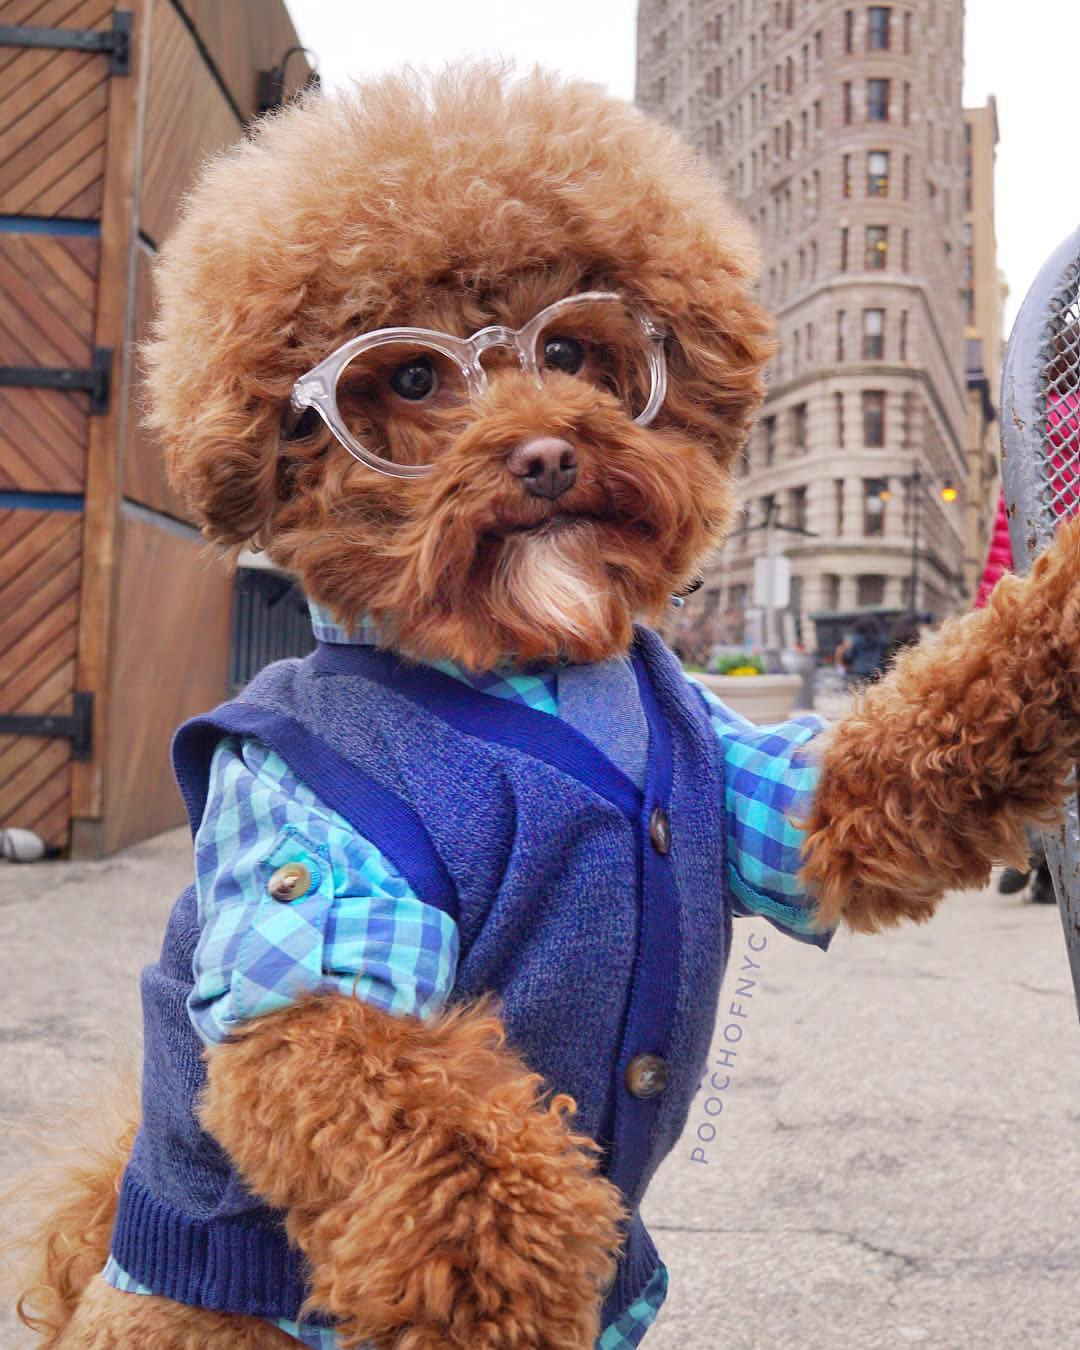 17596553 188432398328923 8508819809582972928 n - 3 of the most trendy and hilarious dogs on Instagram